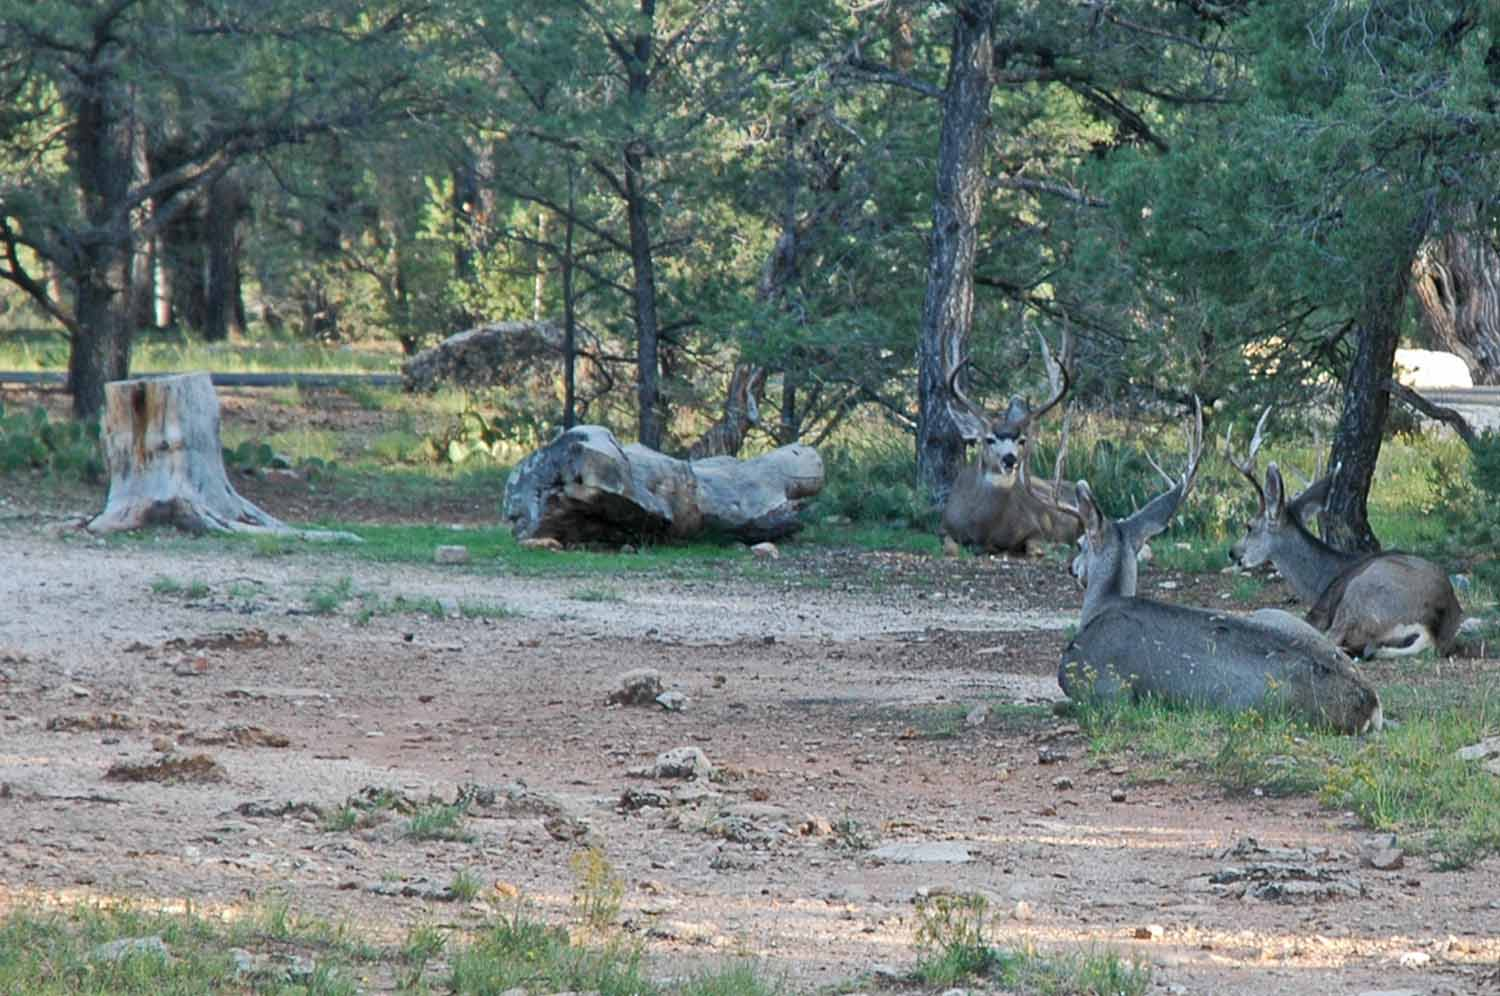 Visitors next to our camp site - Bucks just hanging out - It is the season